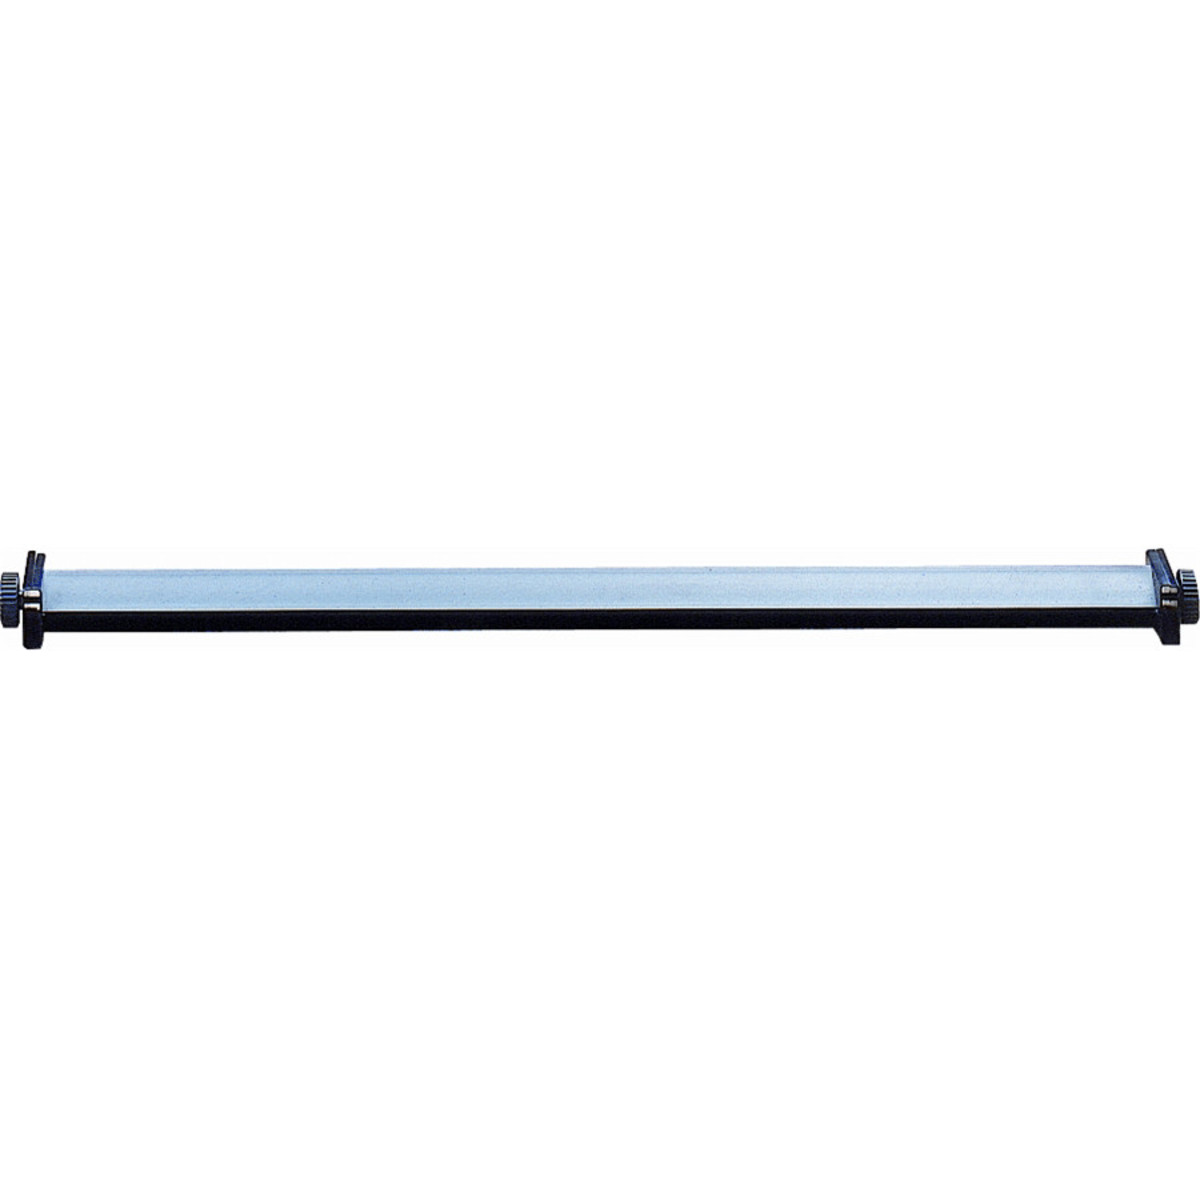 Click to view product details and reviews for Quiklok Zm 44 Add On Crossbar For Zm 20.